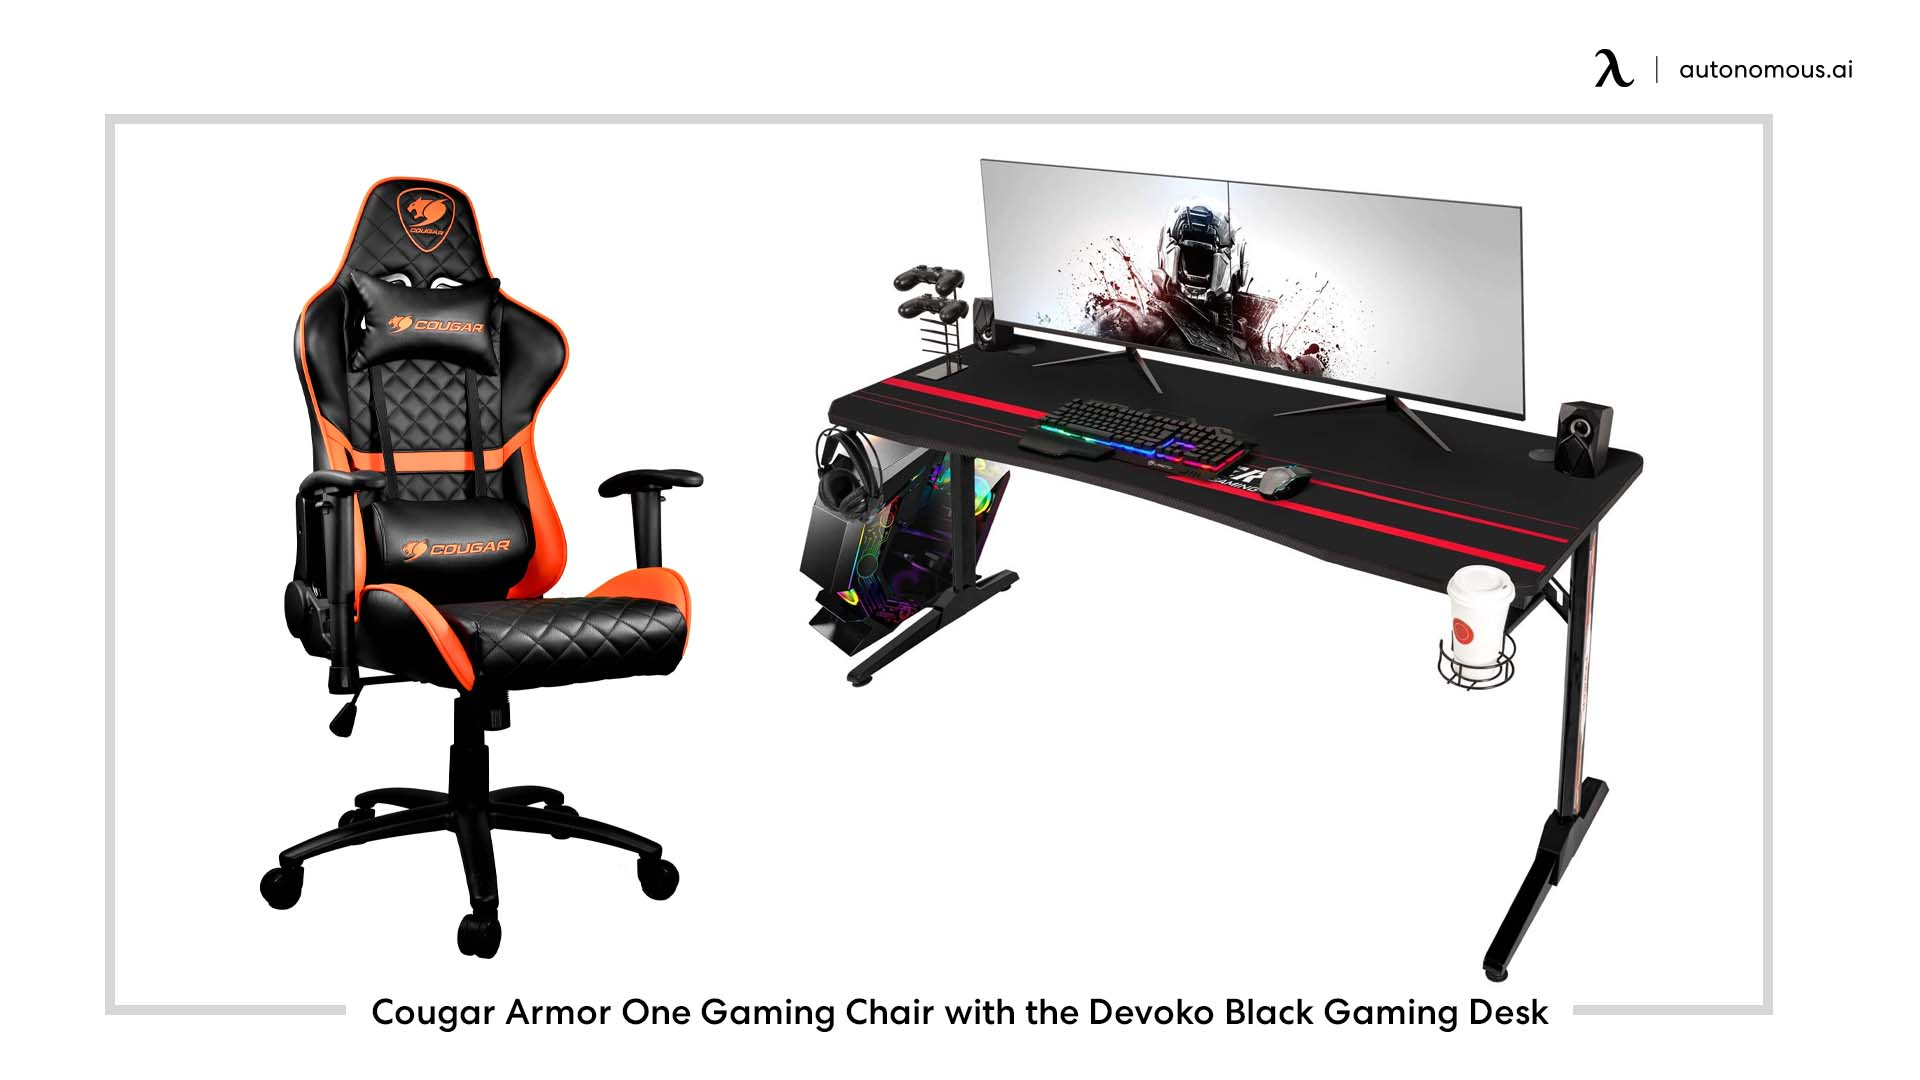 Cougar Armor One Gaming Chair with the Devoko Black Gaming Desk